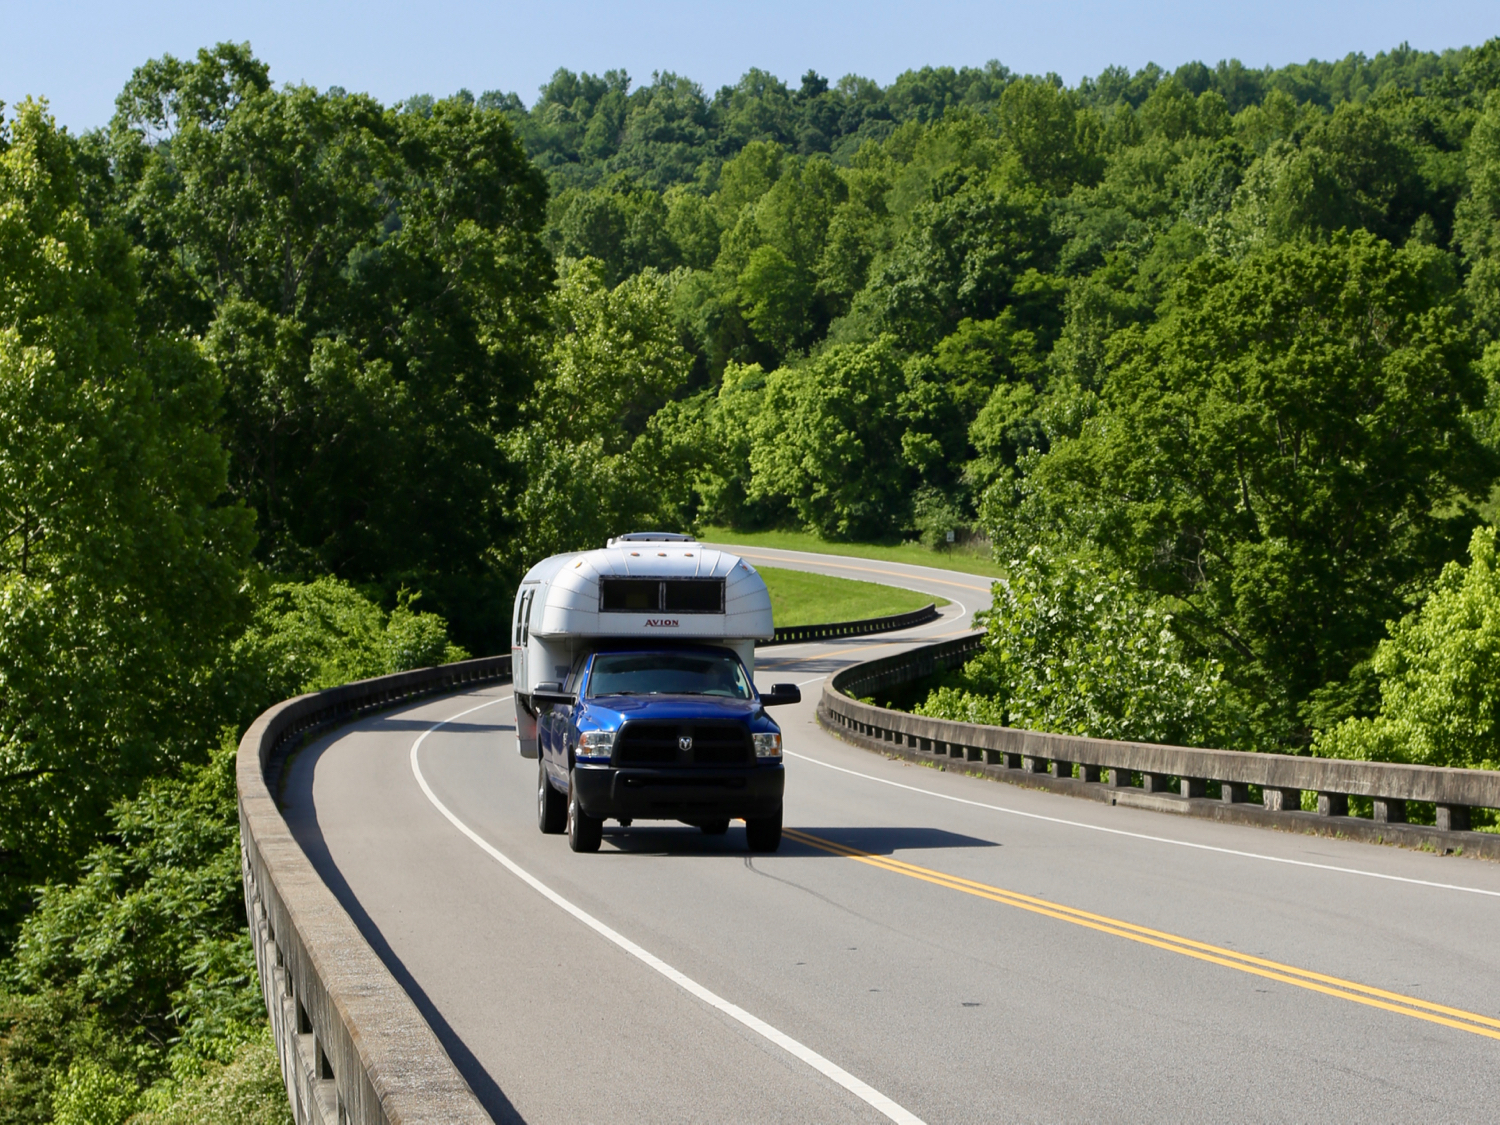 Aluminum truck camper on a blue truck on the Natchez Trace